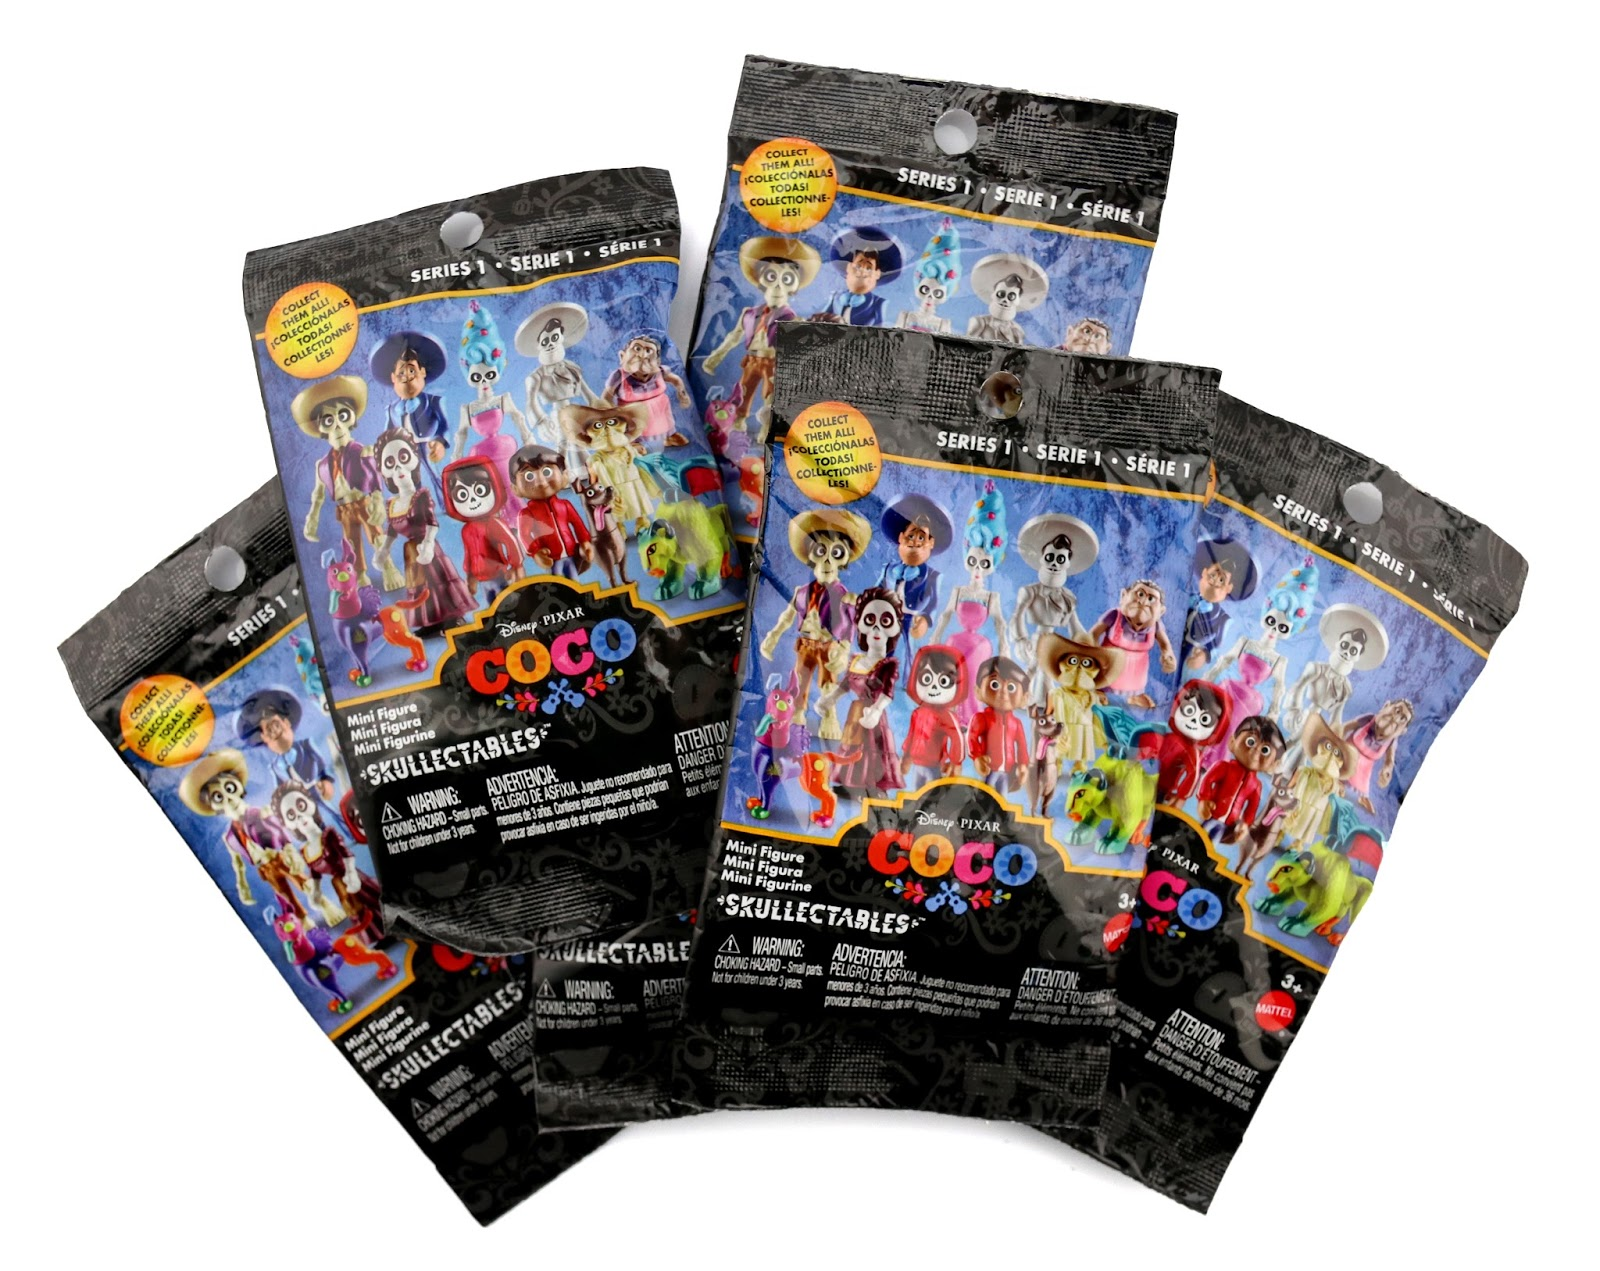 pixar coco blind bags skullectables codes